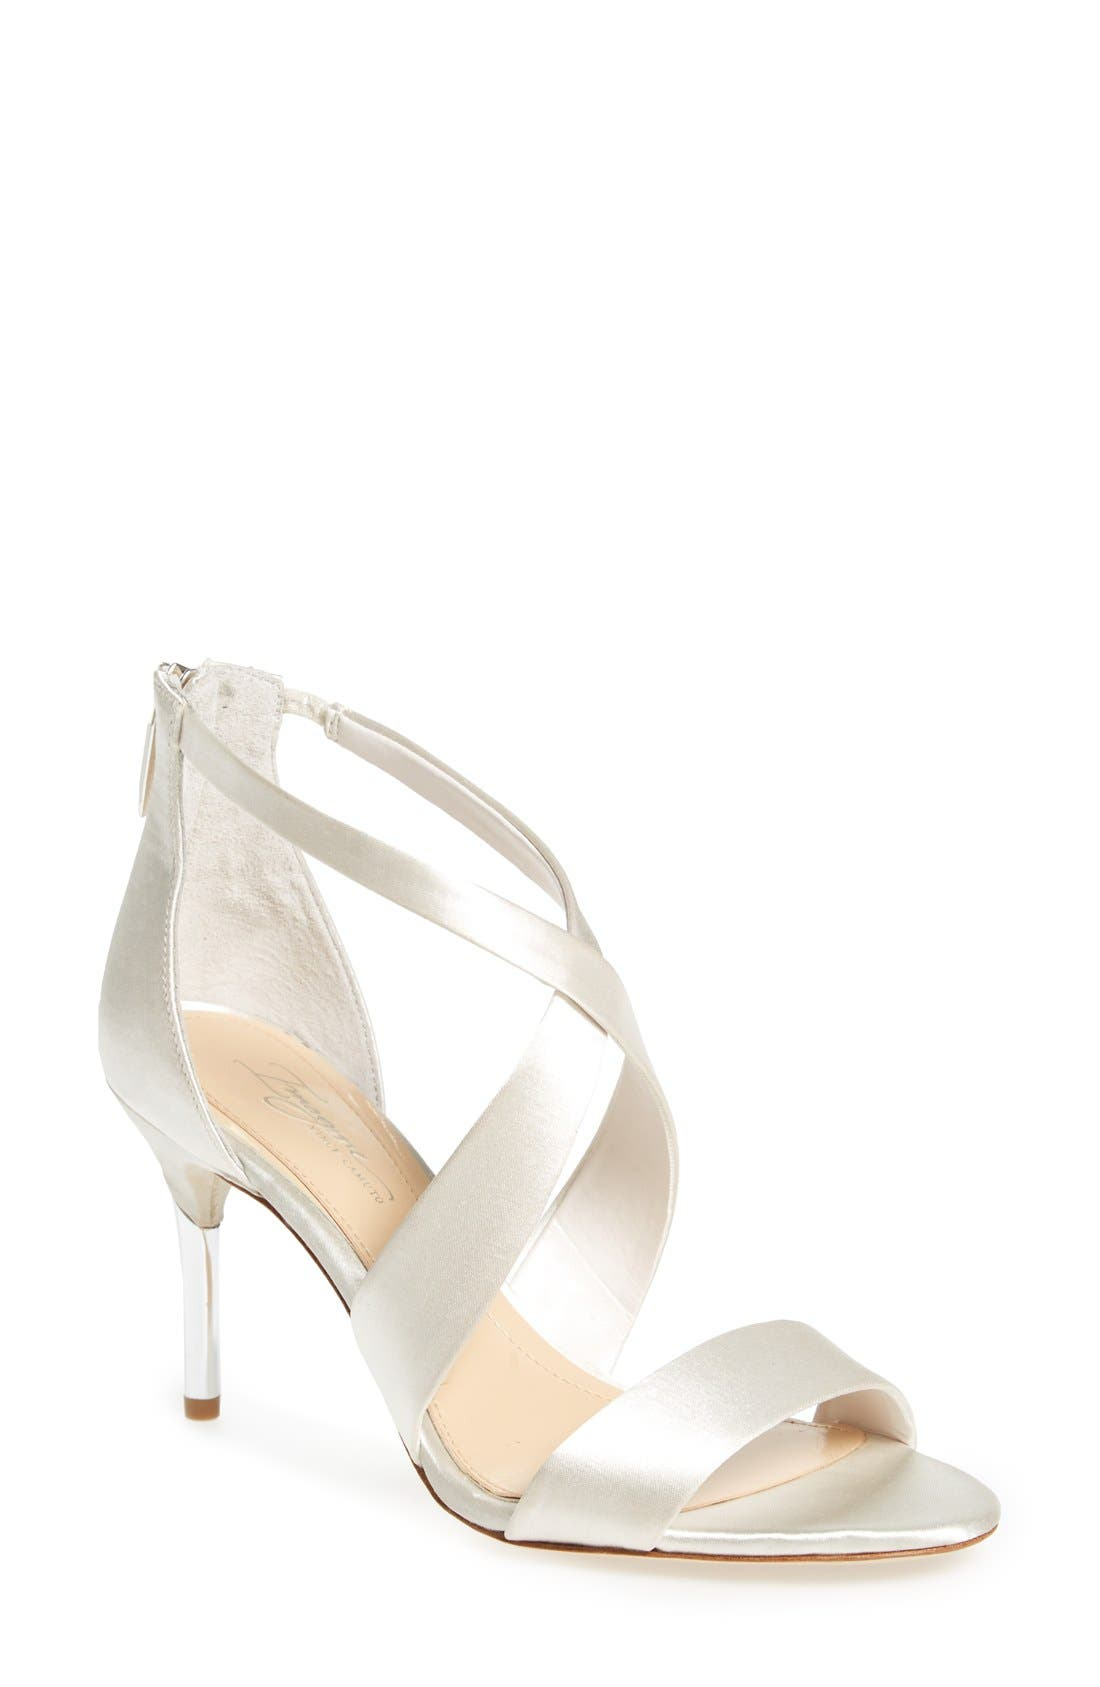 'Pascal' Sandal,                         Main,                         color, Ivory Satin